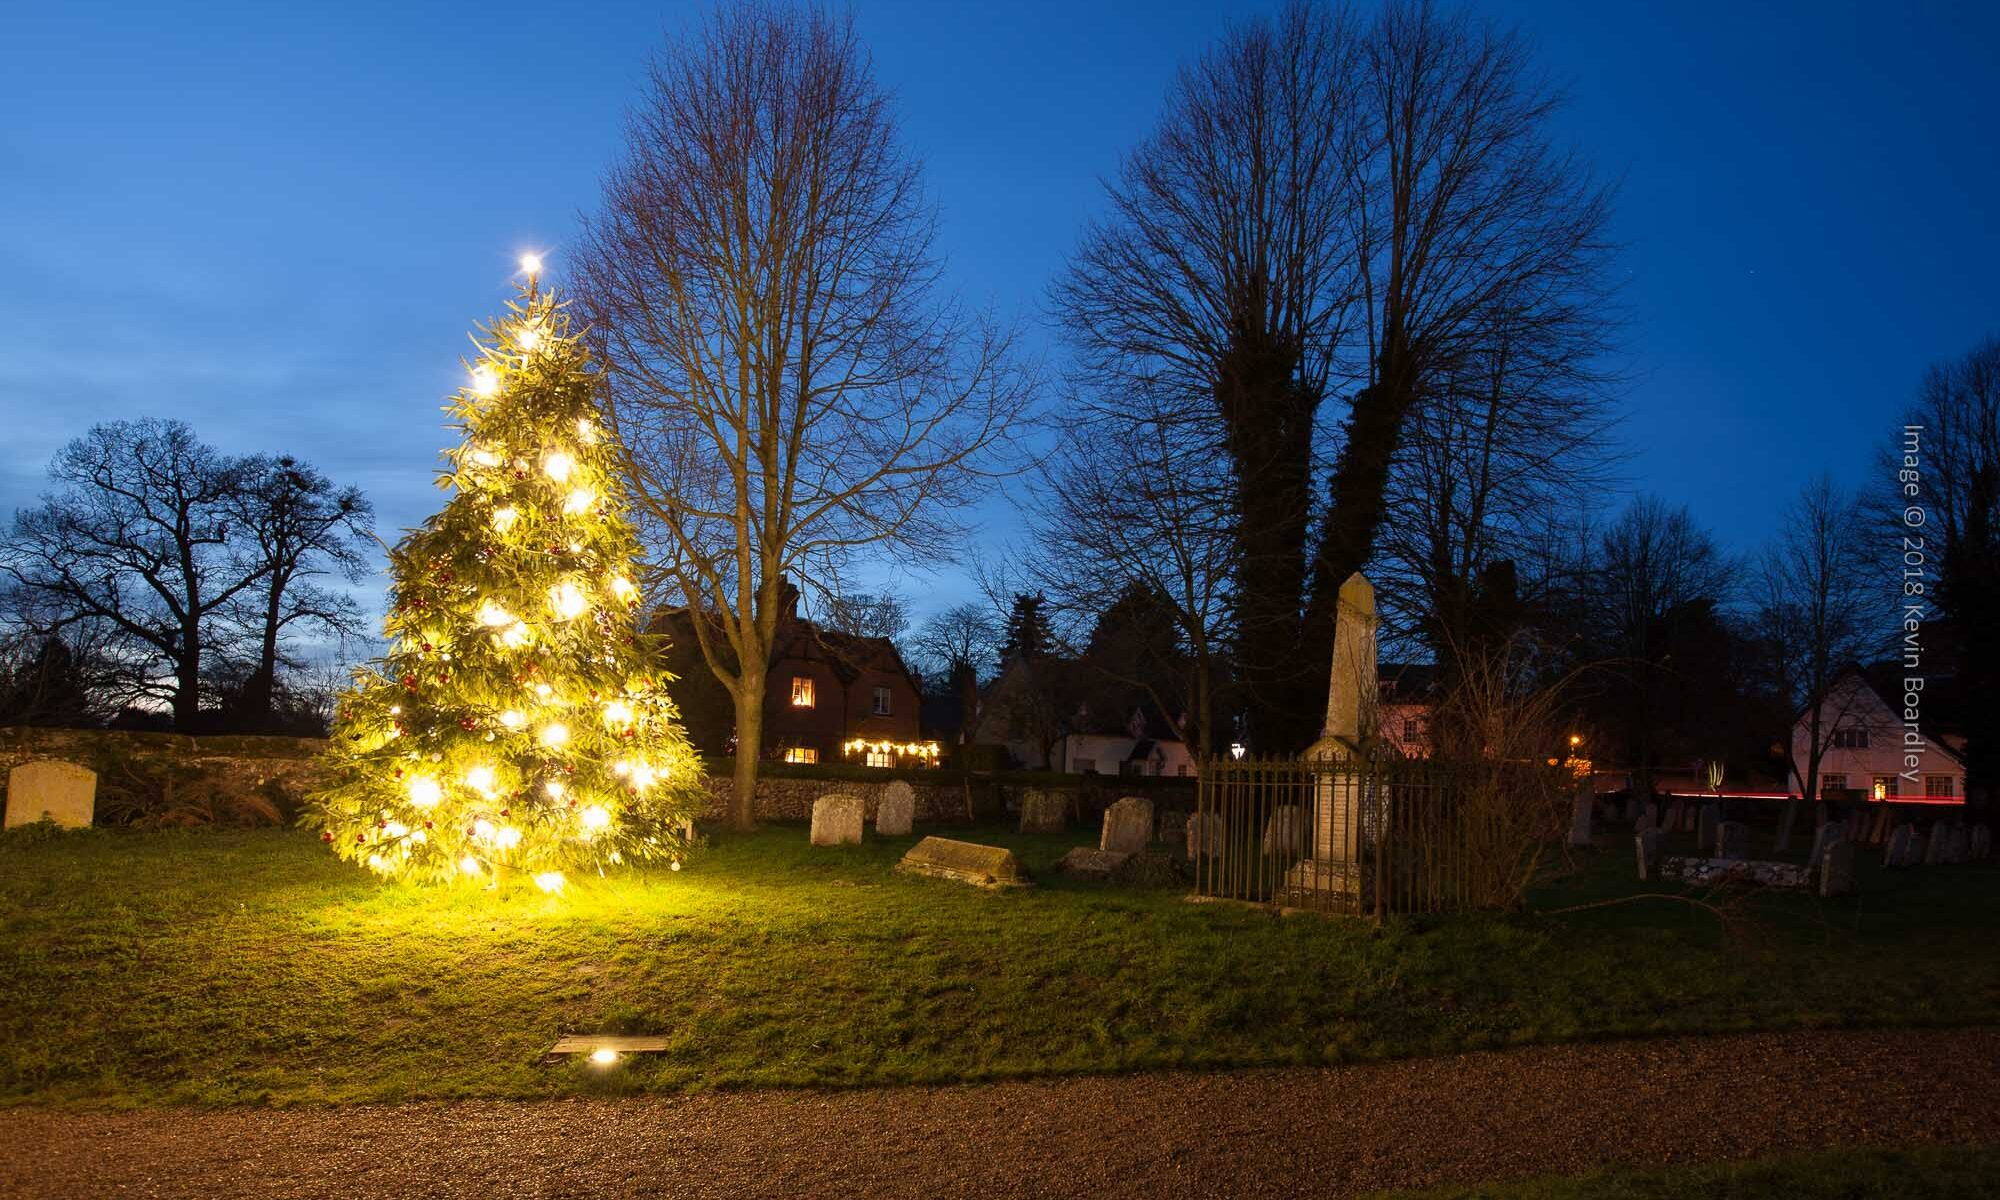 St Mary's Churchyard and Christmas Tree 2018